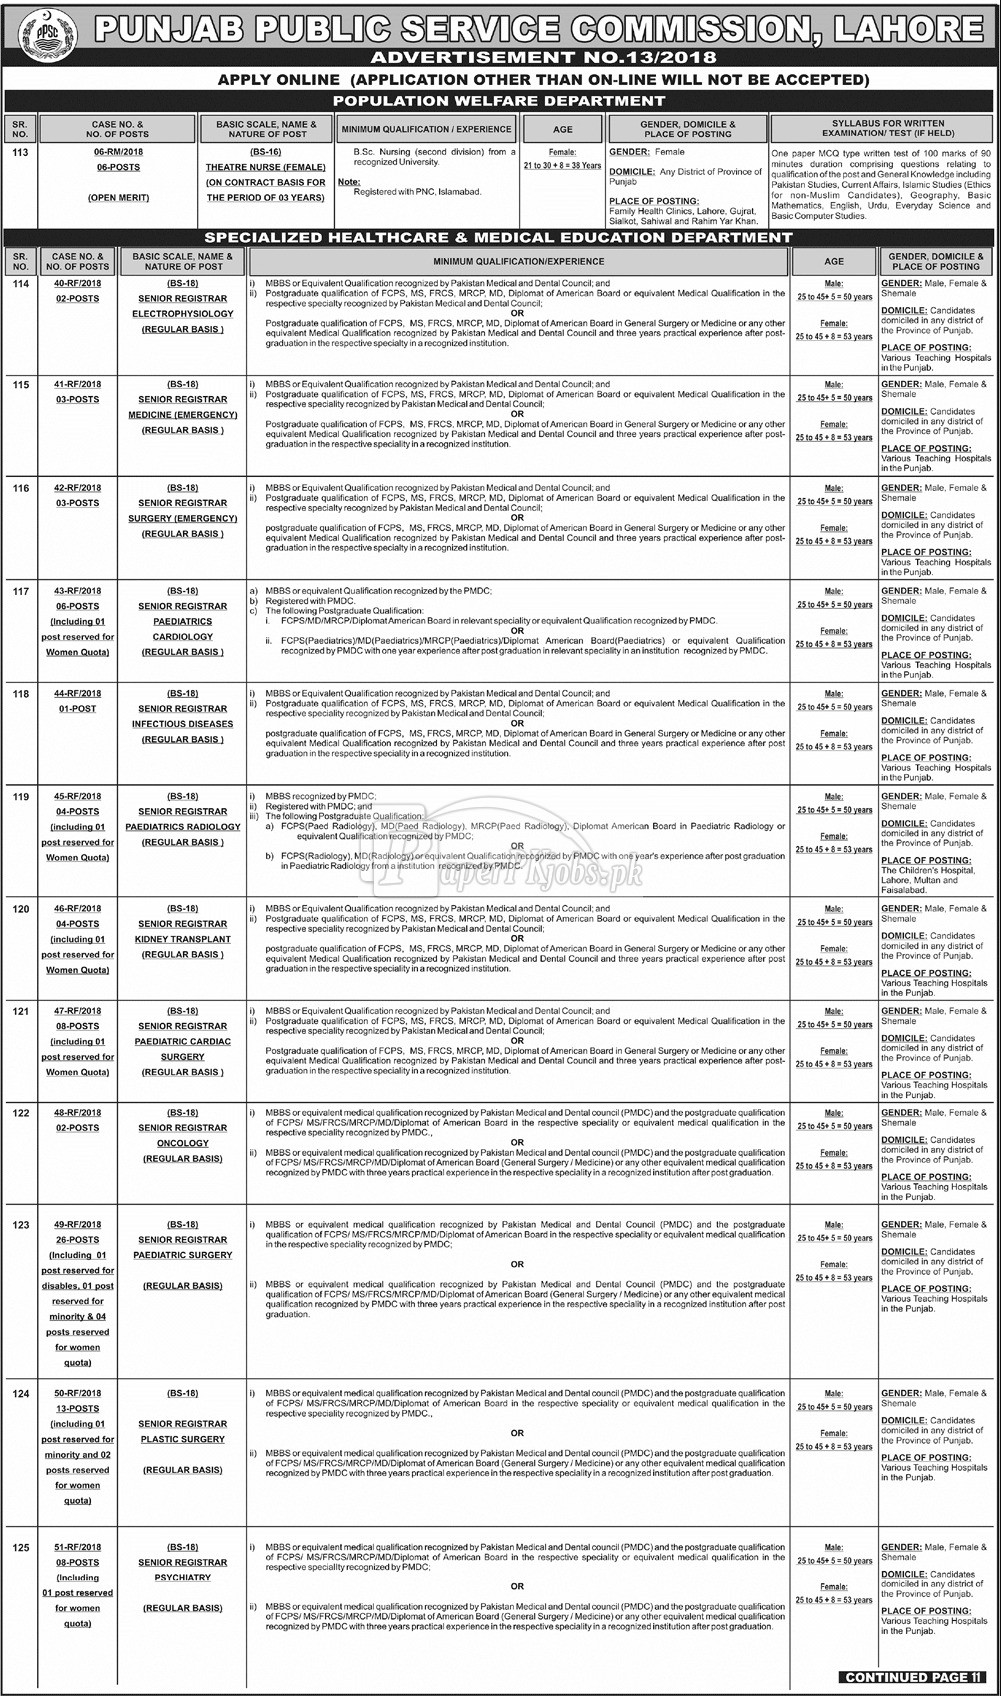 PPSC Jobs 6 May 2018